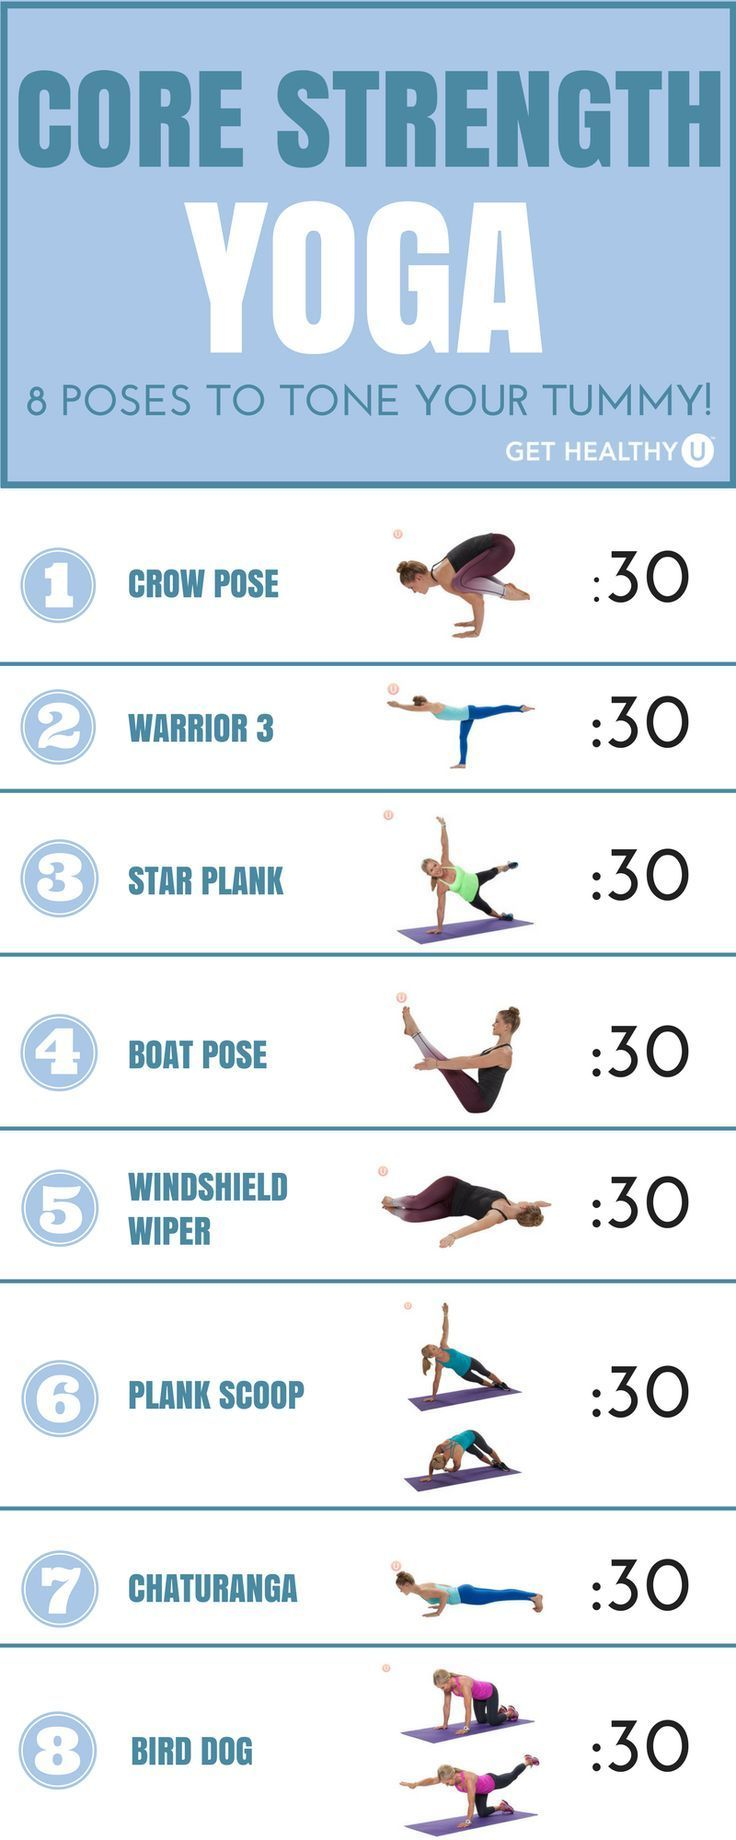 Not only does yoga help calm your mind, but it also is amazing for your abs! Use these 8 challenging...